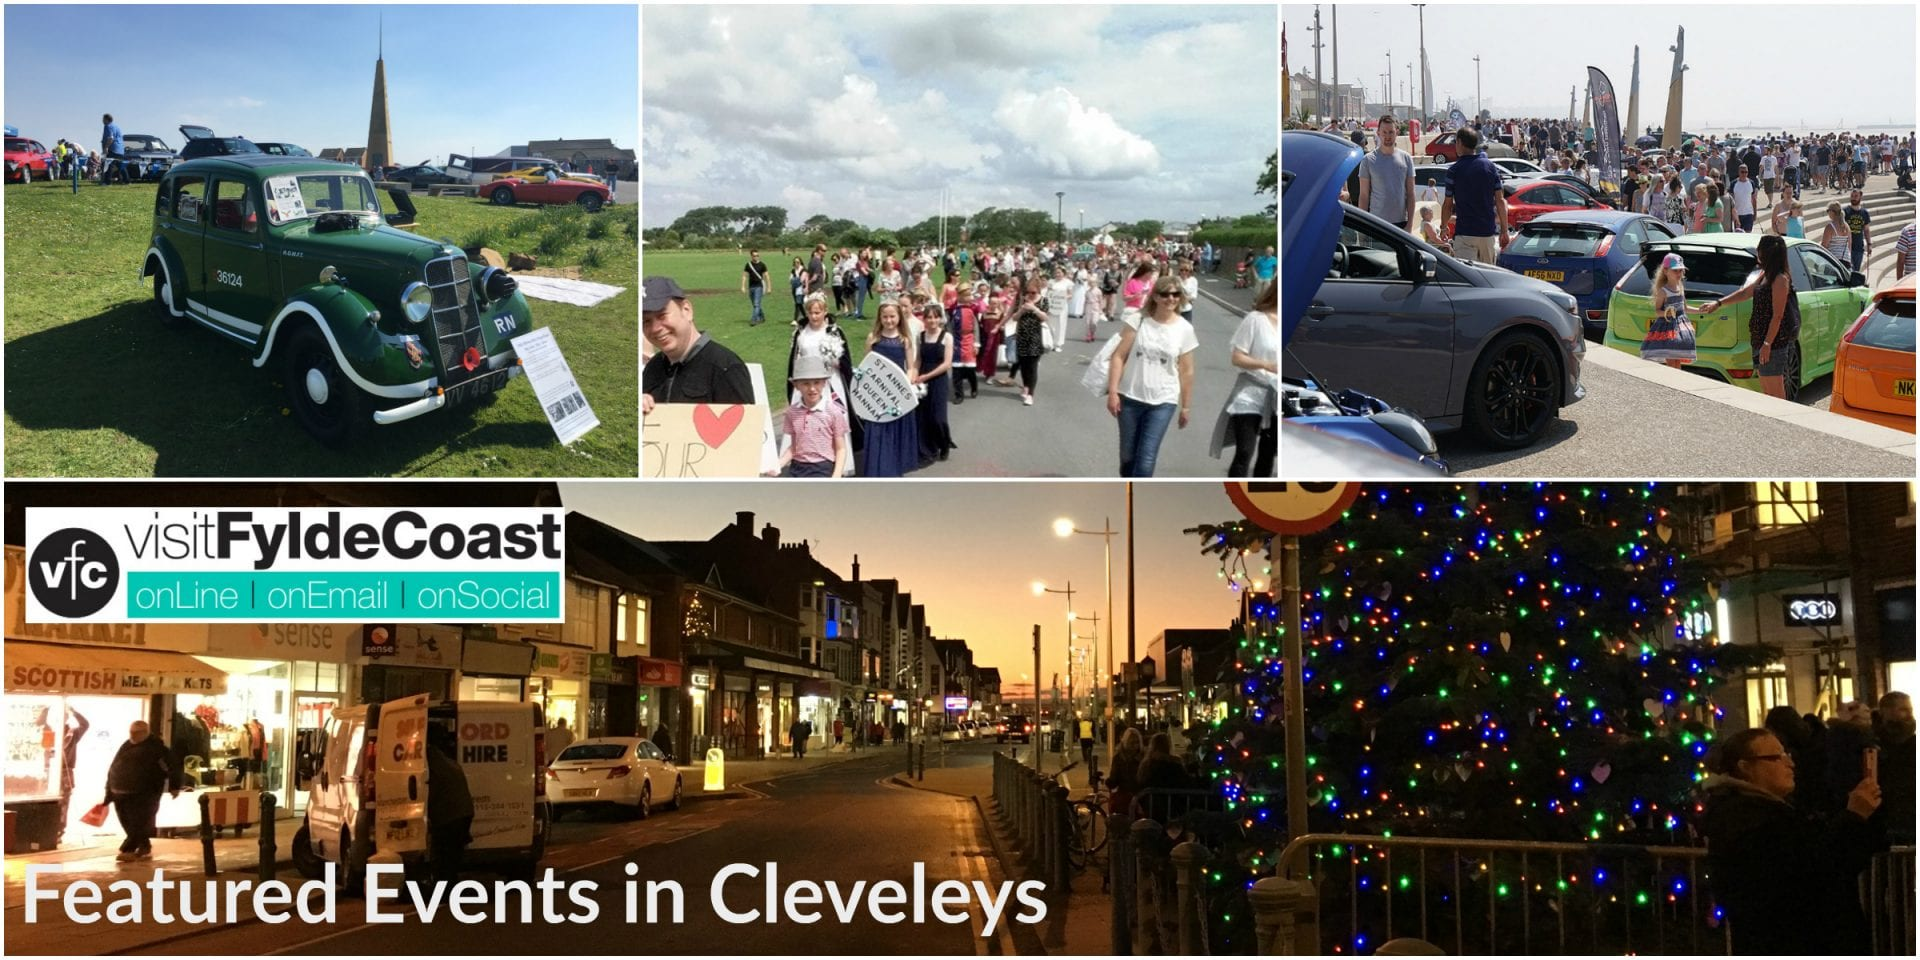 Featured Events in Cleveleys